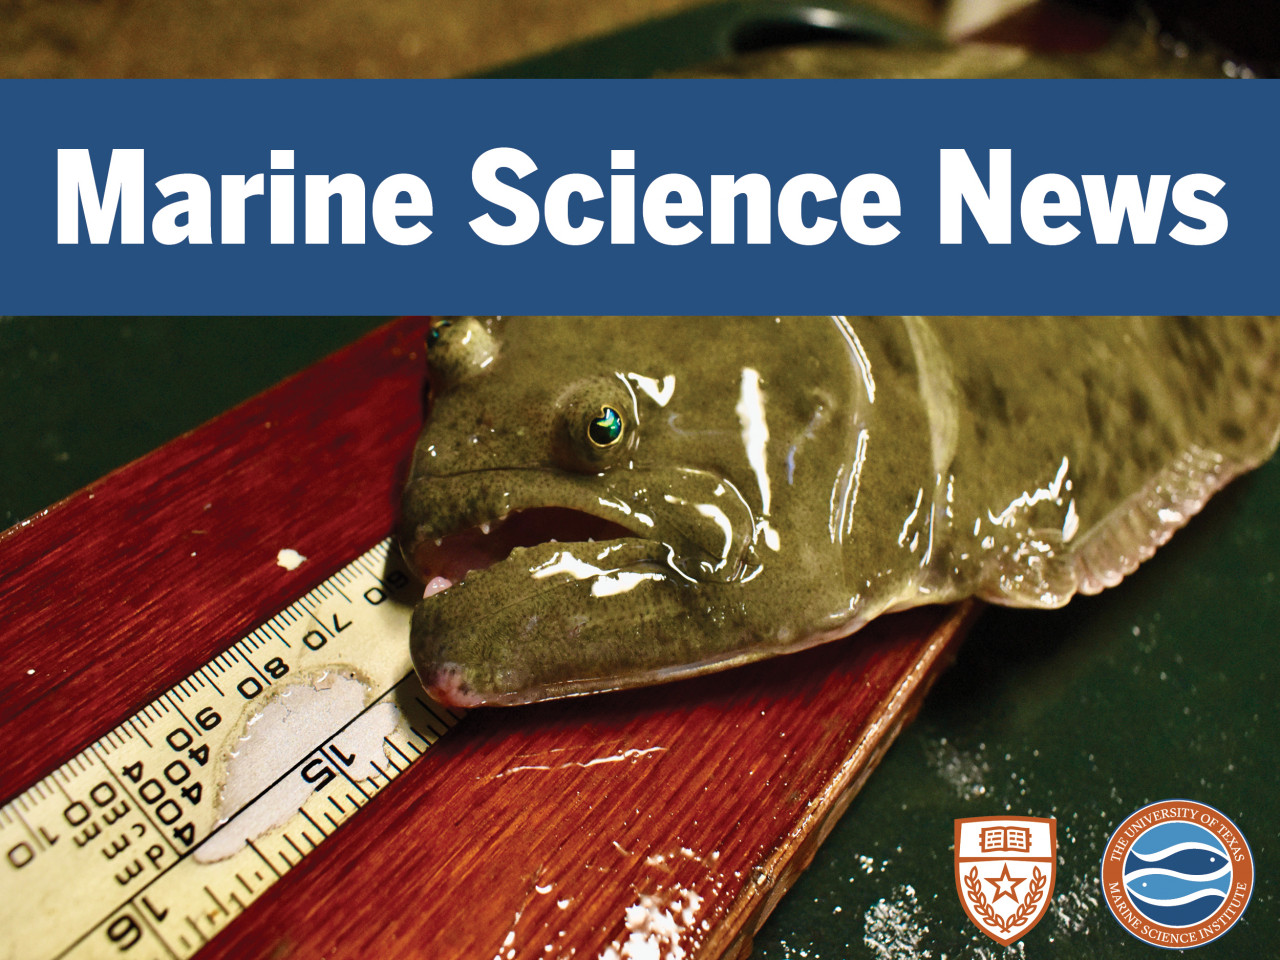 Marine Science News - 1st edition 2020